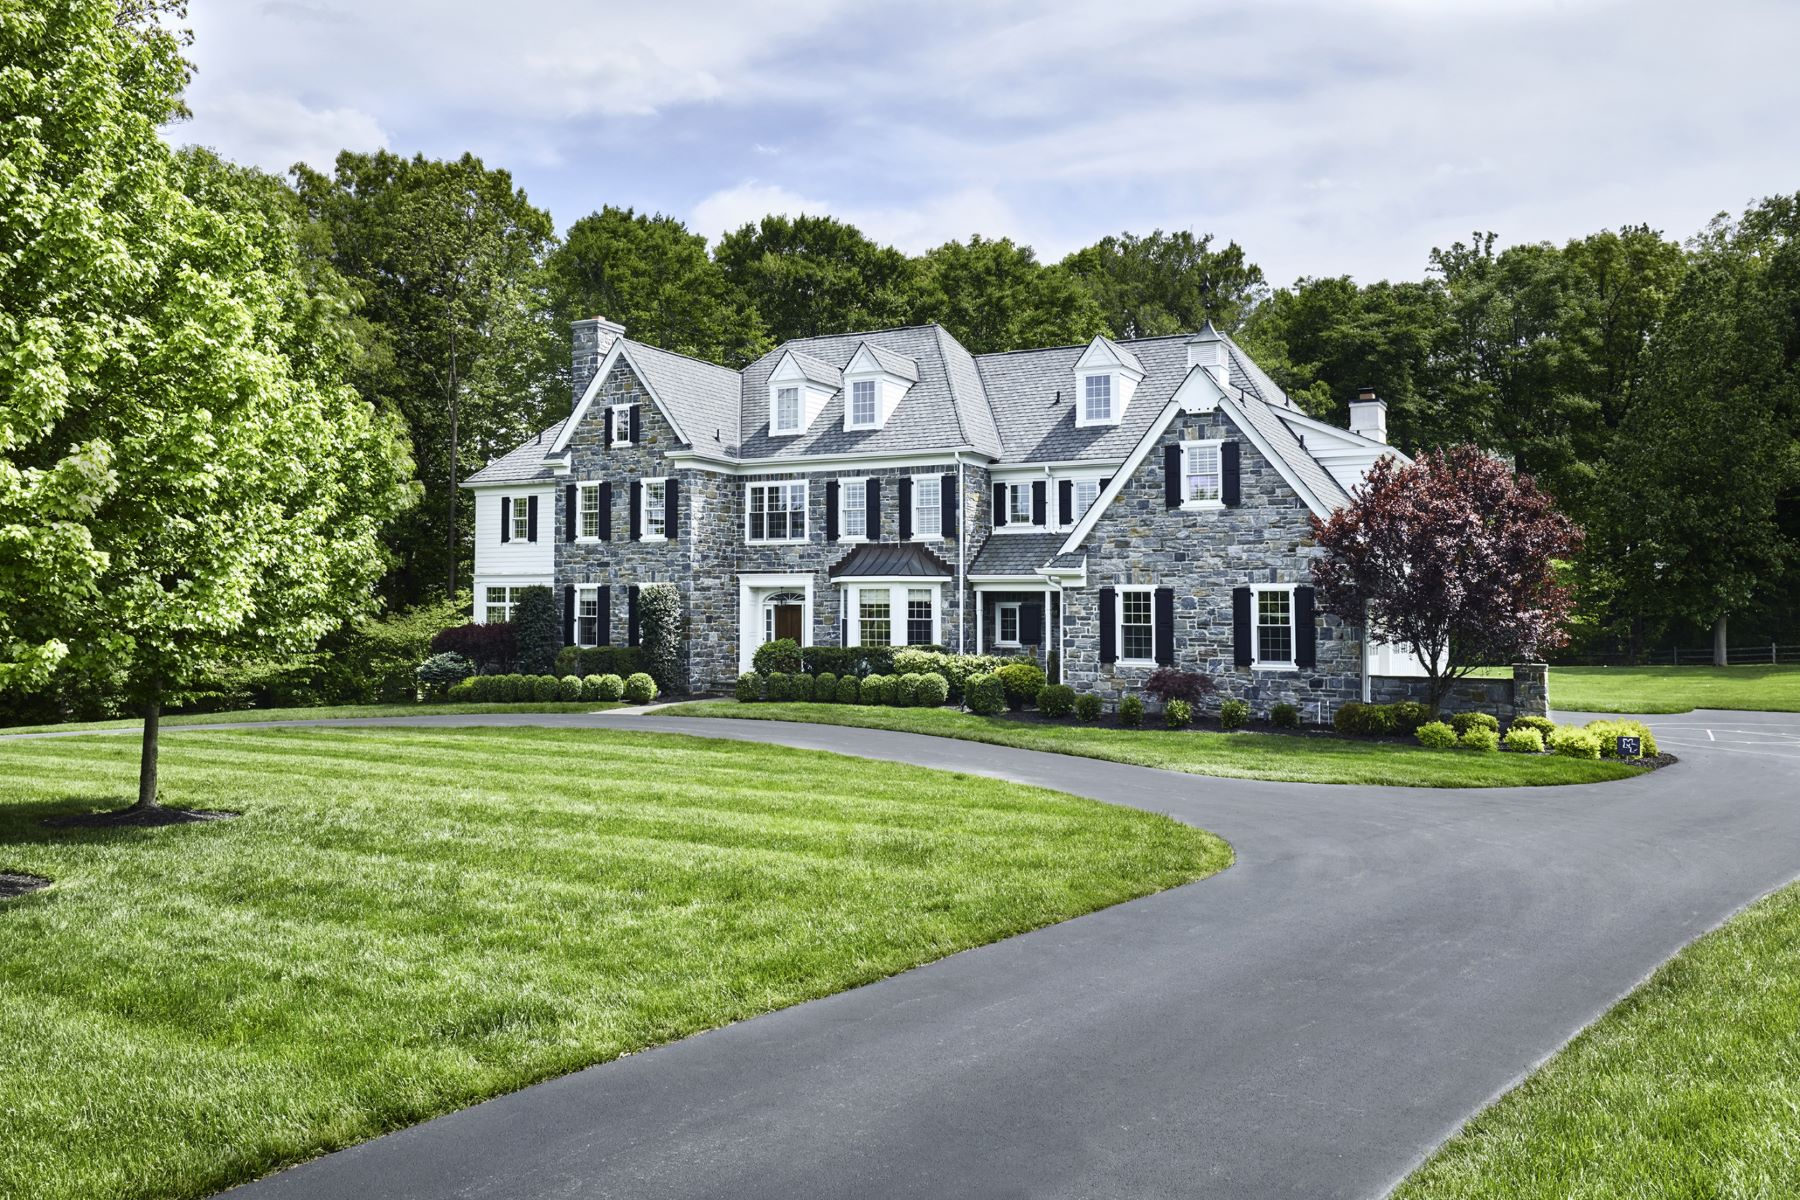 Single Family Home for Sale at Michael Visich Custom Manor Home 4 WITHERS LN Newtown Square, Pennsylvania, 19073 United States